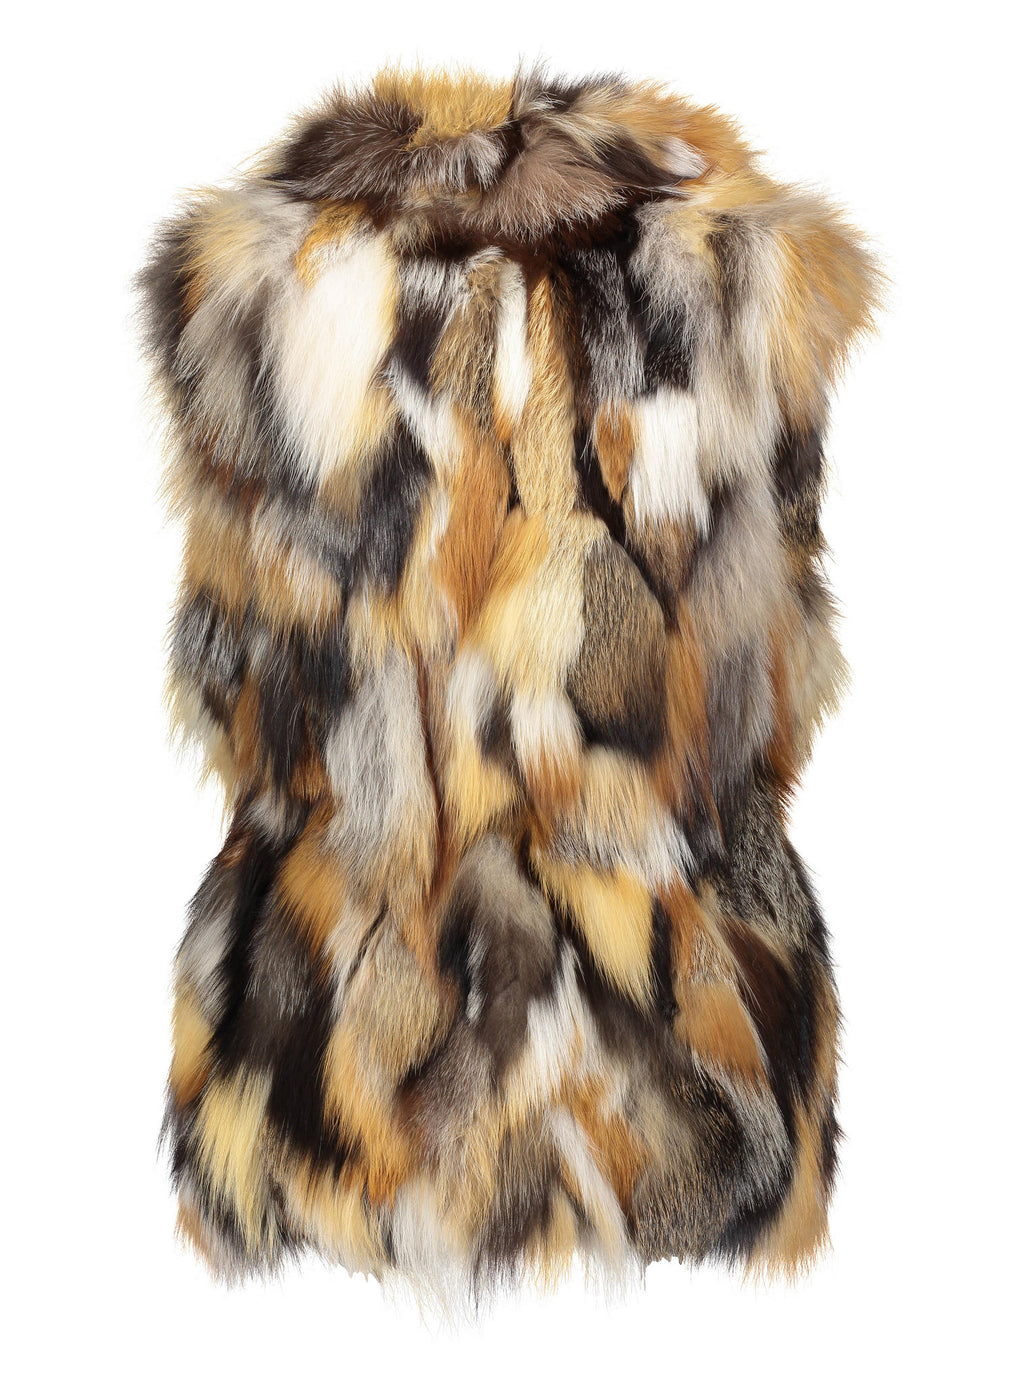 DORI Sculpted fox fur vest